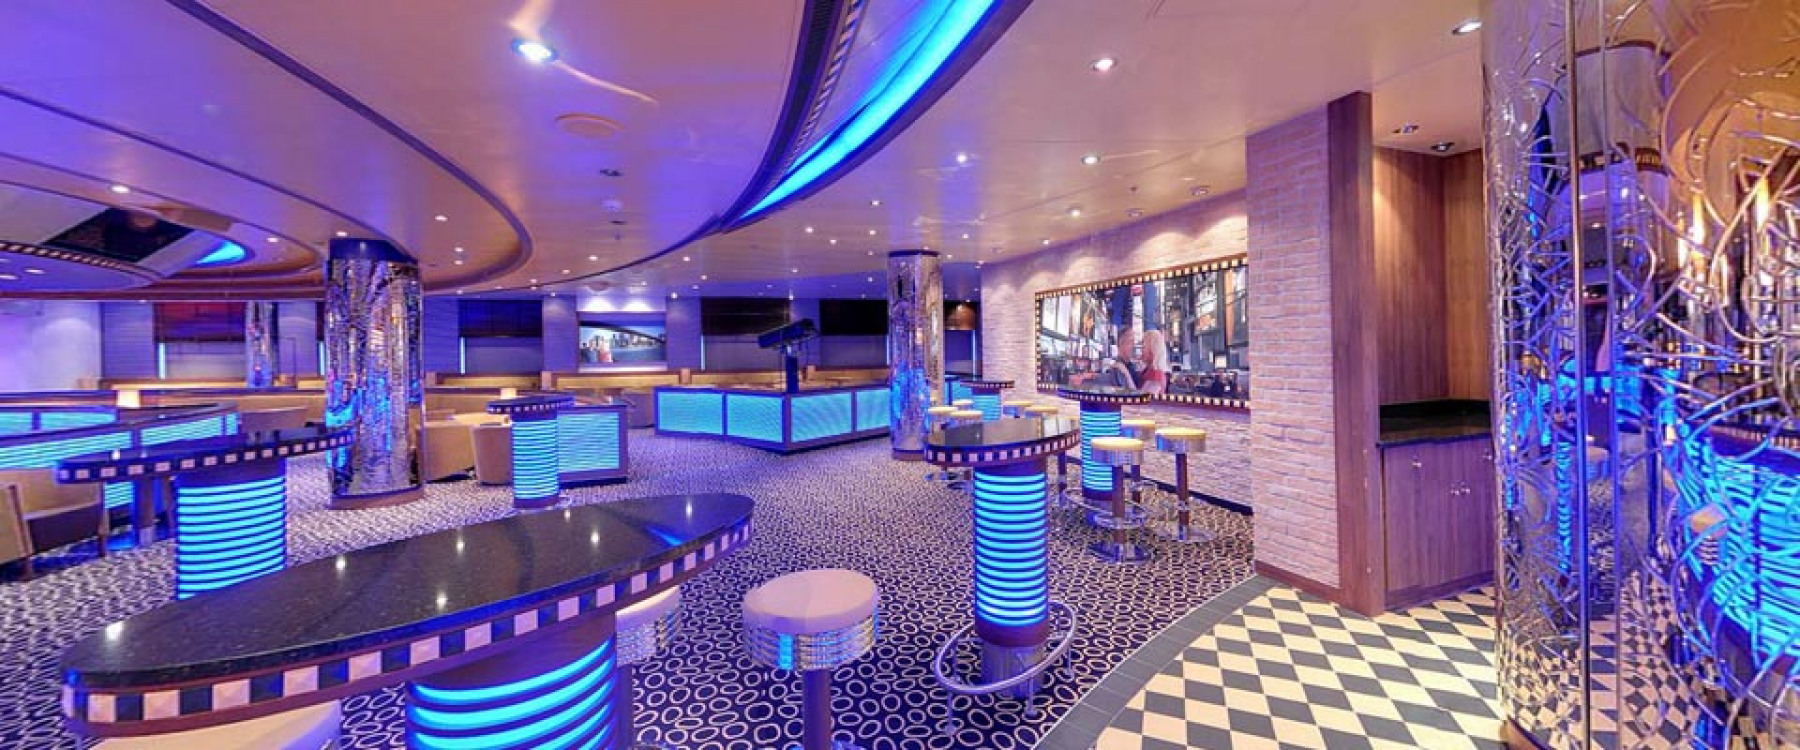 P&O Cruises Azura Interior Manhattan1 .jpg